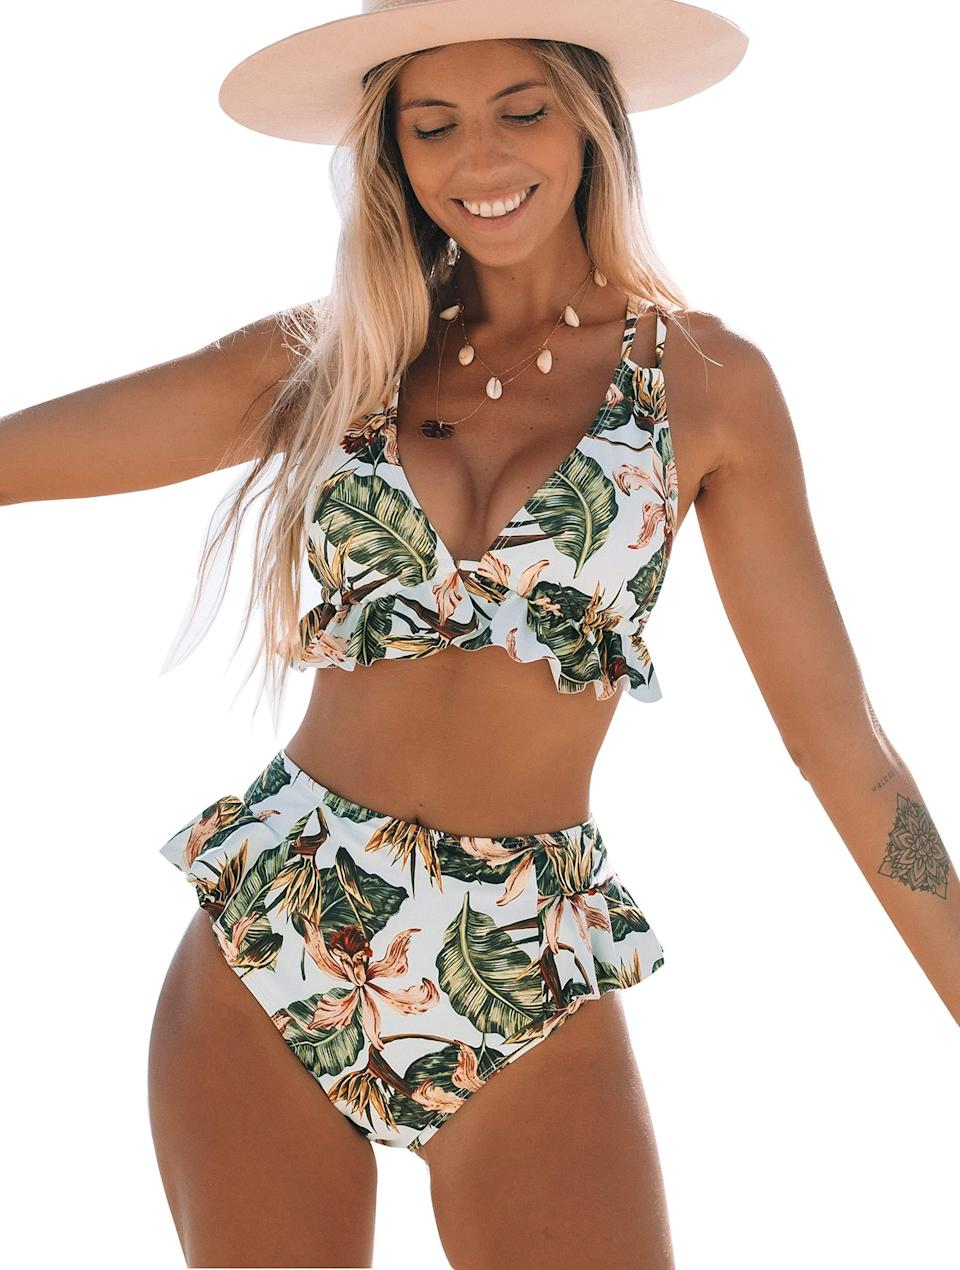 """<strong><em>Telaura High Waisted Ruffle Bikini</em></strong><br><br>Flutter your way to the seaside with this reviewer-approved two piece. """"Was hesitant to get this, but I just sized up and I'm so glad I did! I'm 5' 4"""" at about 165 pounds, athletic build — larger at the bottom — and this high waisted bikini bottom hugs my curves so nicely and the ruffles are so cute! I highly recommend but size up at least one full size.<br><br><br><strong>Telaura</strong> High Waisted Ruffle Bikini, $, available at <a href=""""https://amzn.to/2SbbSDZ"""" rel=""""nofollow noopener"""" target=""""_blank"""" data-ylk=""""slk:Amazon"""" class=""""link rapid-noclick-resp"""">Amazon</a>"""